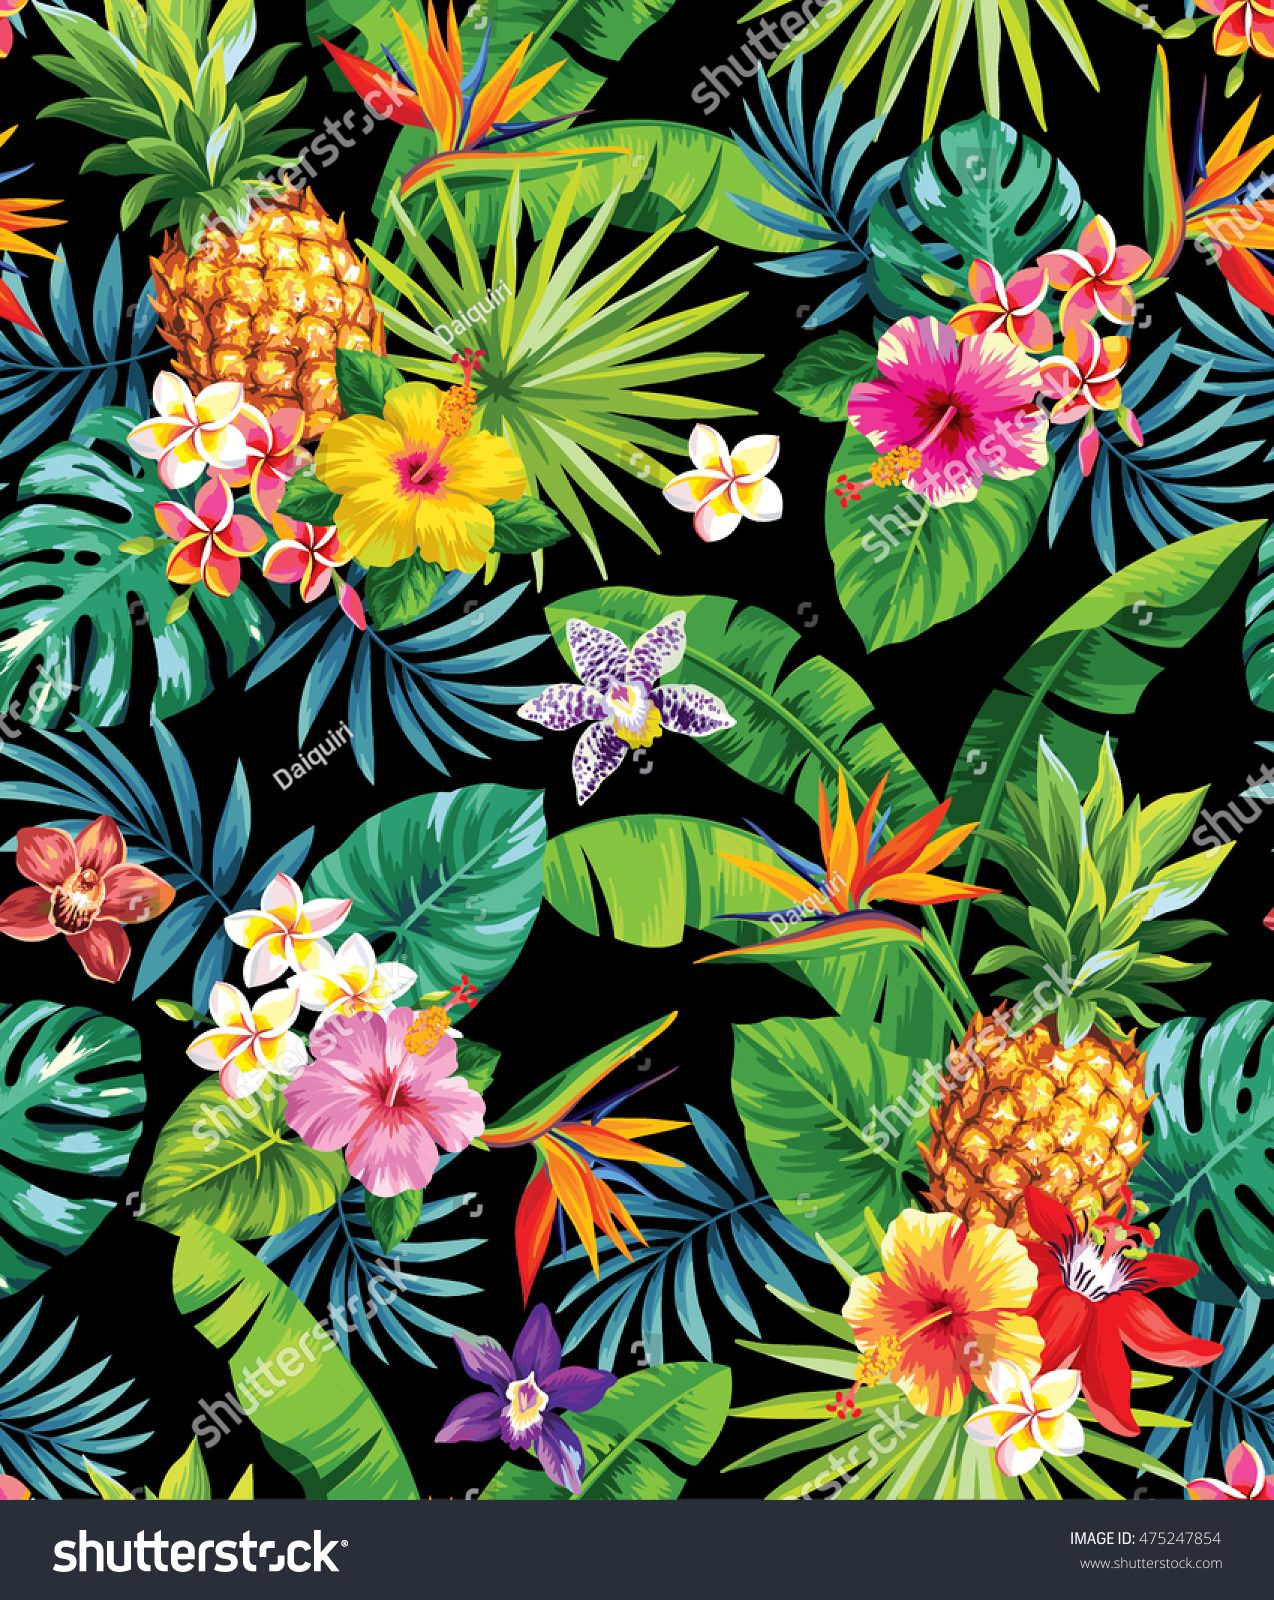 Seamless tropical pattern with pineapples, palm leaves and flowers. Vector illustration. #tropicalpattern